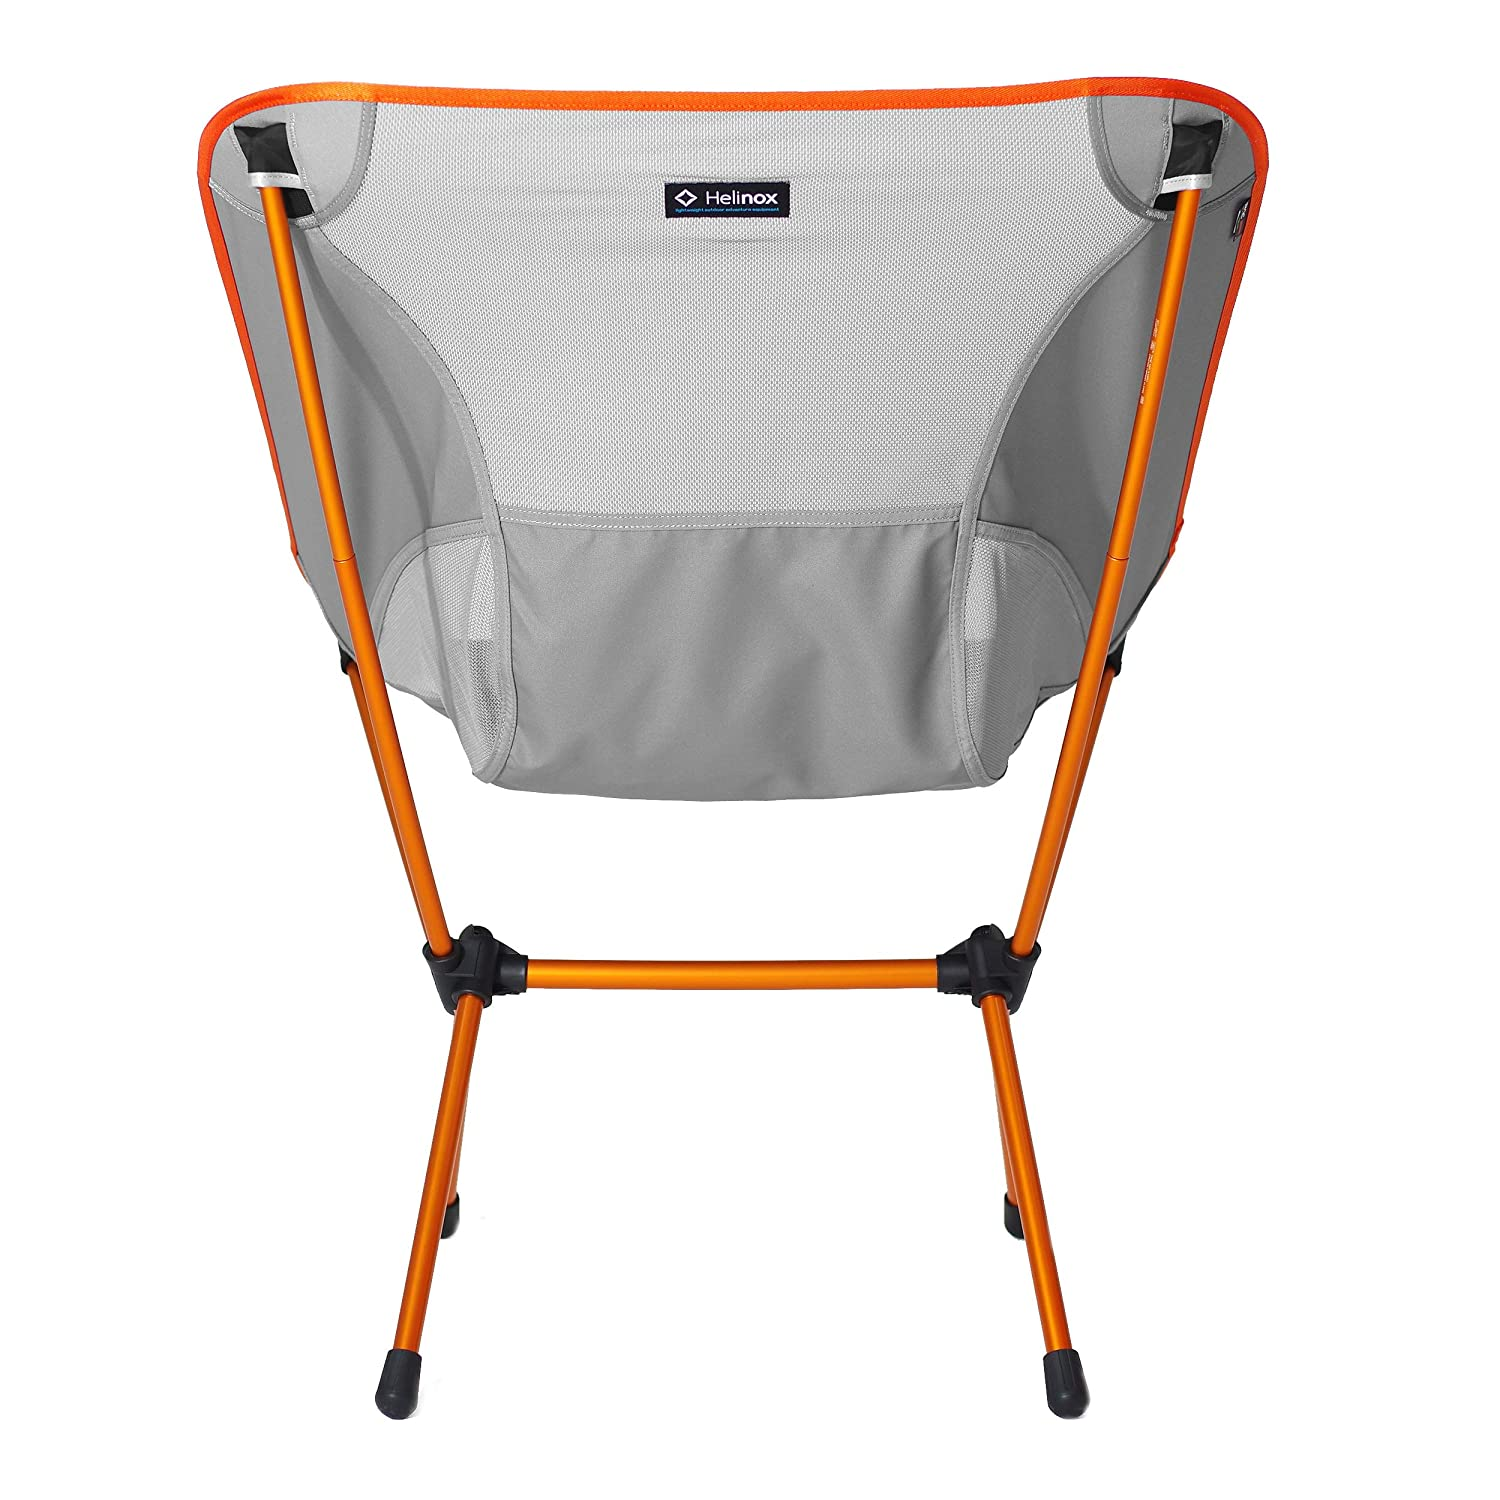 Helinox Chair One XL Lightweight Portable Collapsible Camping Chair